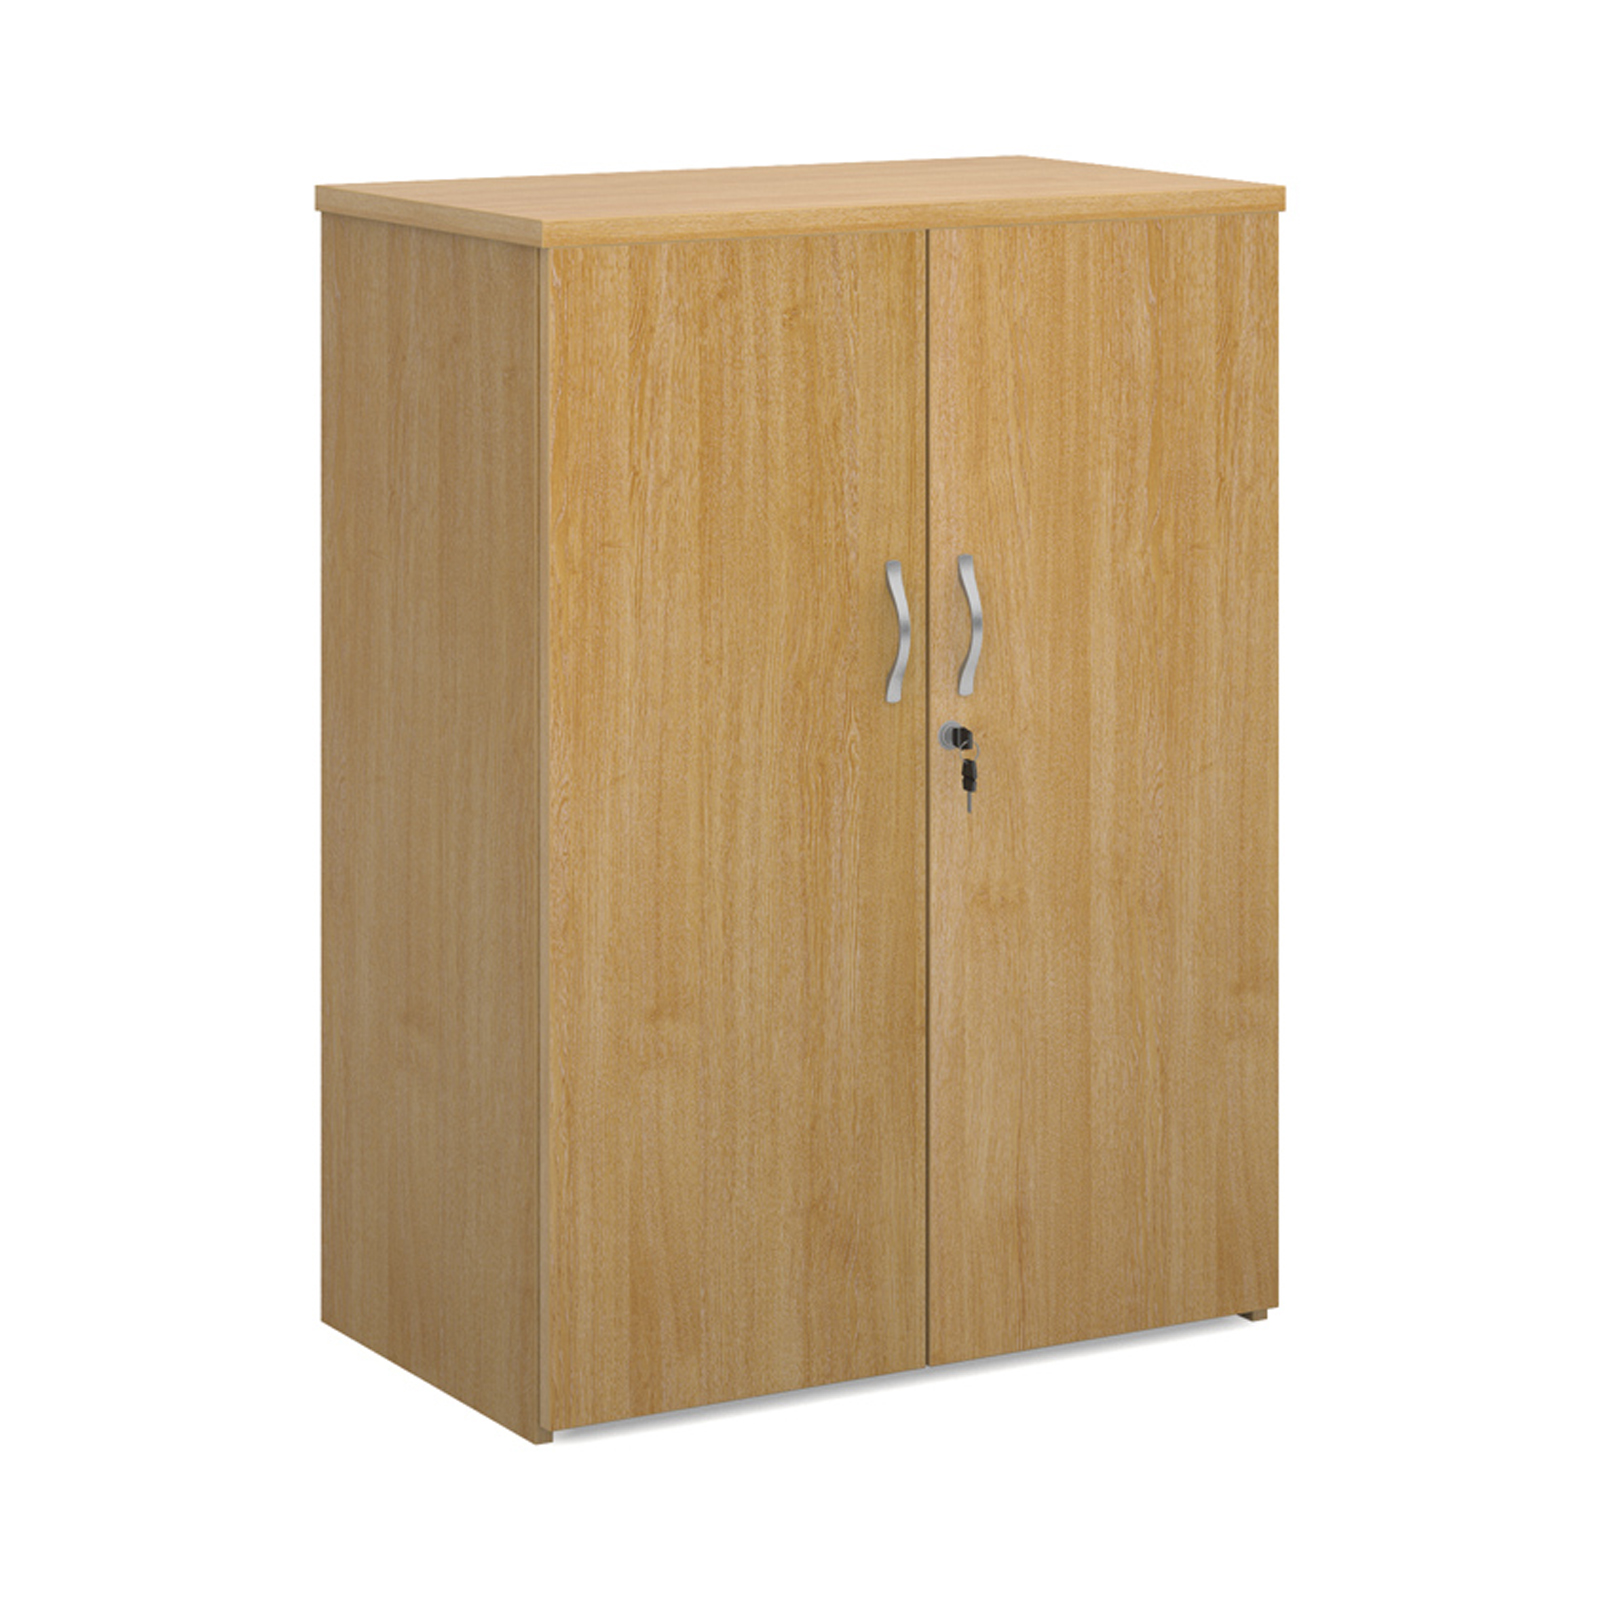 Up to 1200mm High Universal double door cupboard 1090mm high with 2 shelves - oak